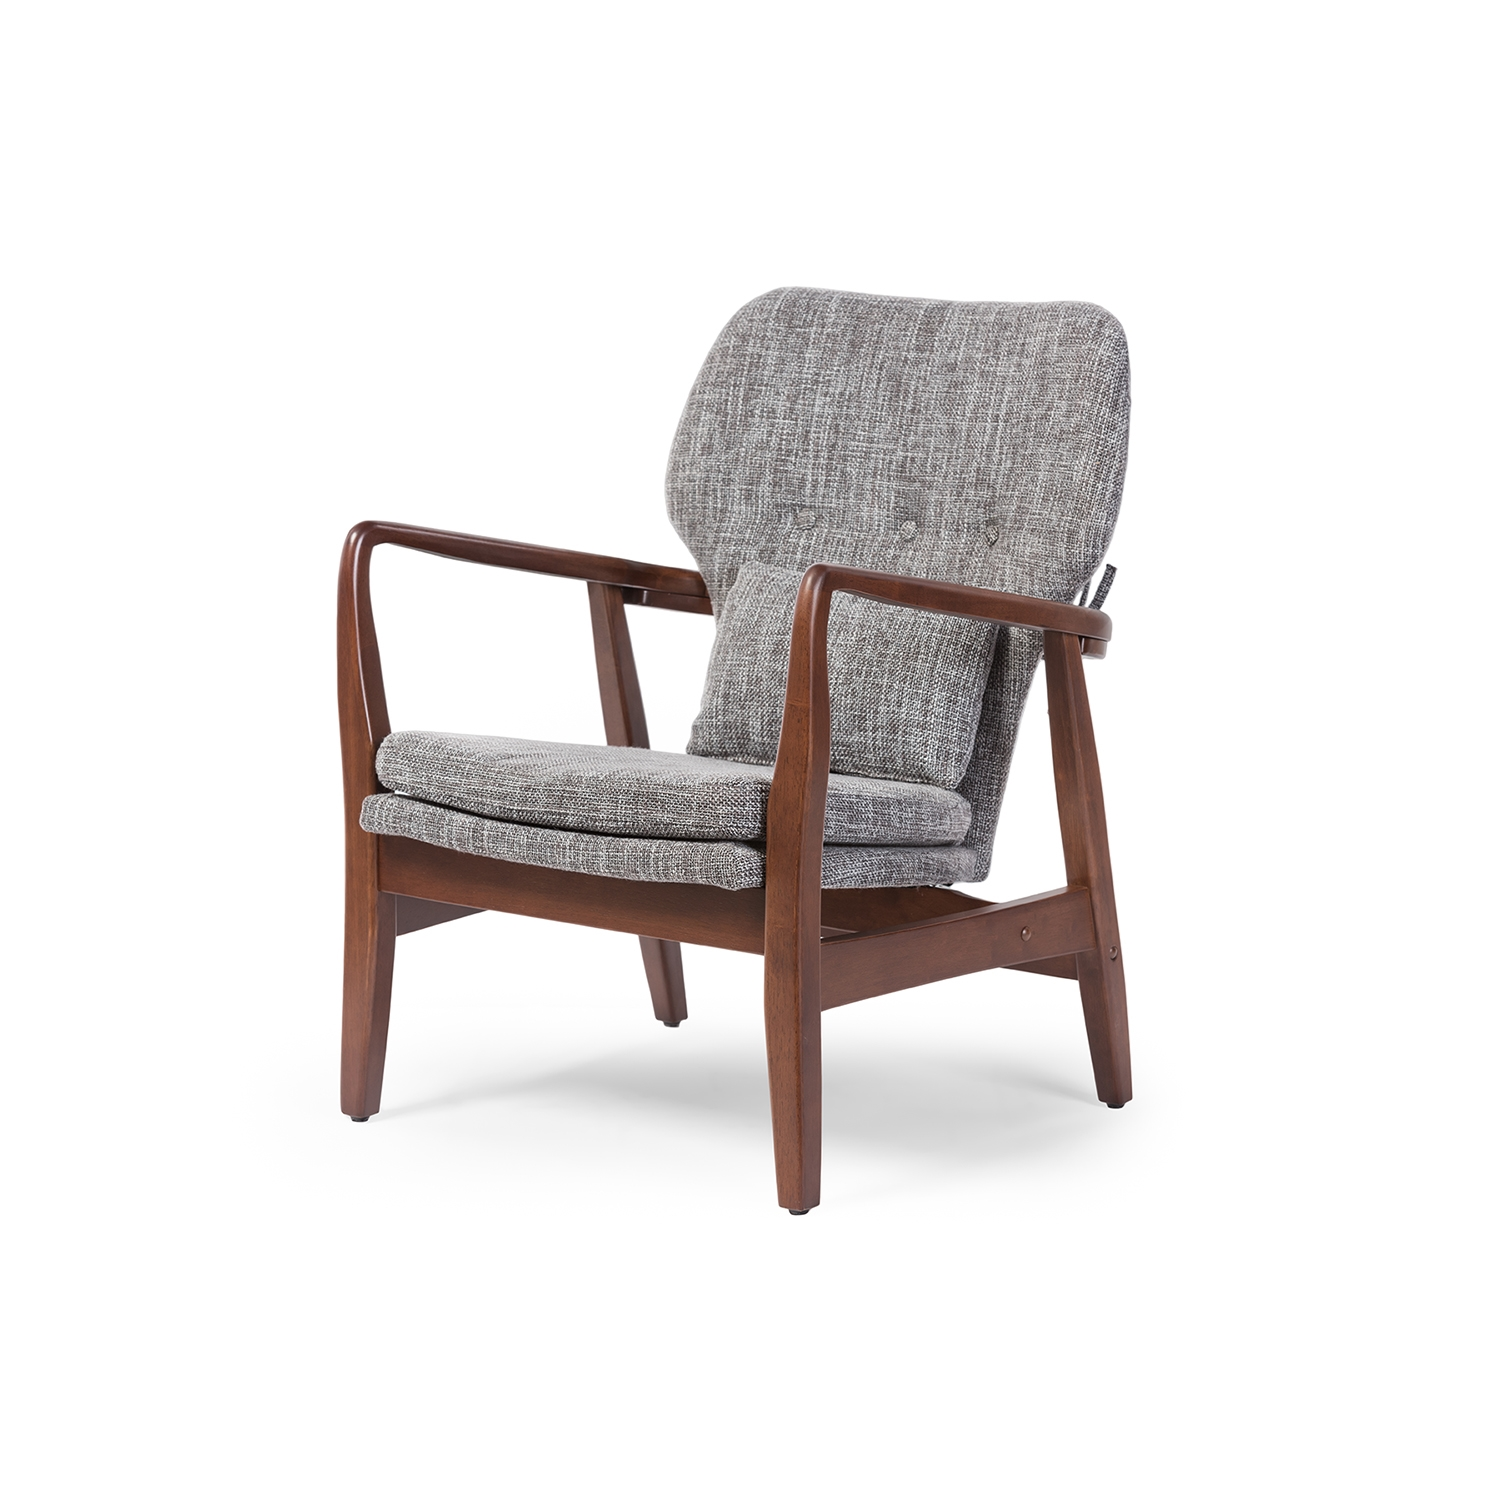 Ordinary Mid Century Accent Chair Part - 14: Baxton Studio Rundell Mid-Century Modern Retro Grey Fabric Upholstered  Leisure Accent Chair In Walnut Wood Frame | Affordable Modern Design |  Baxton Studio